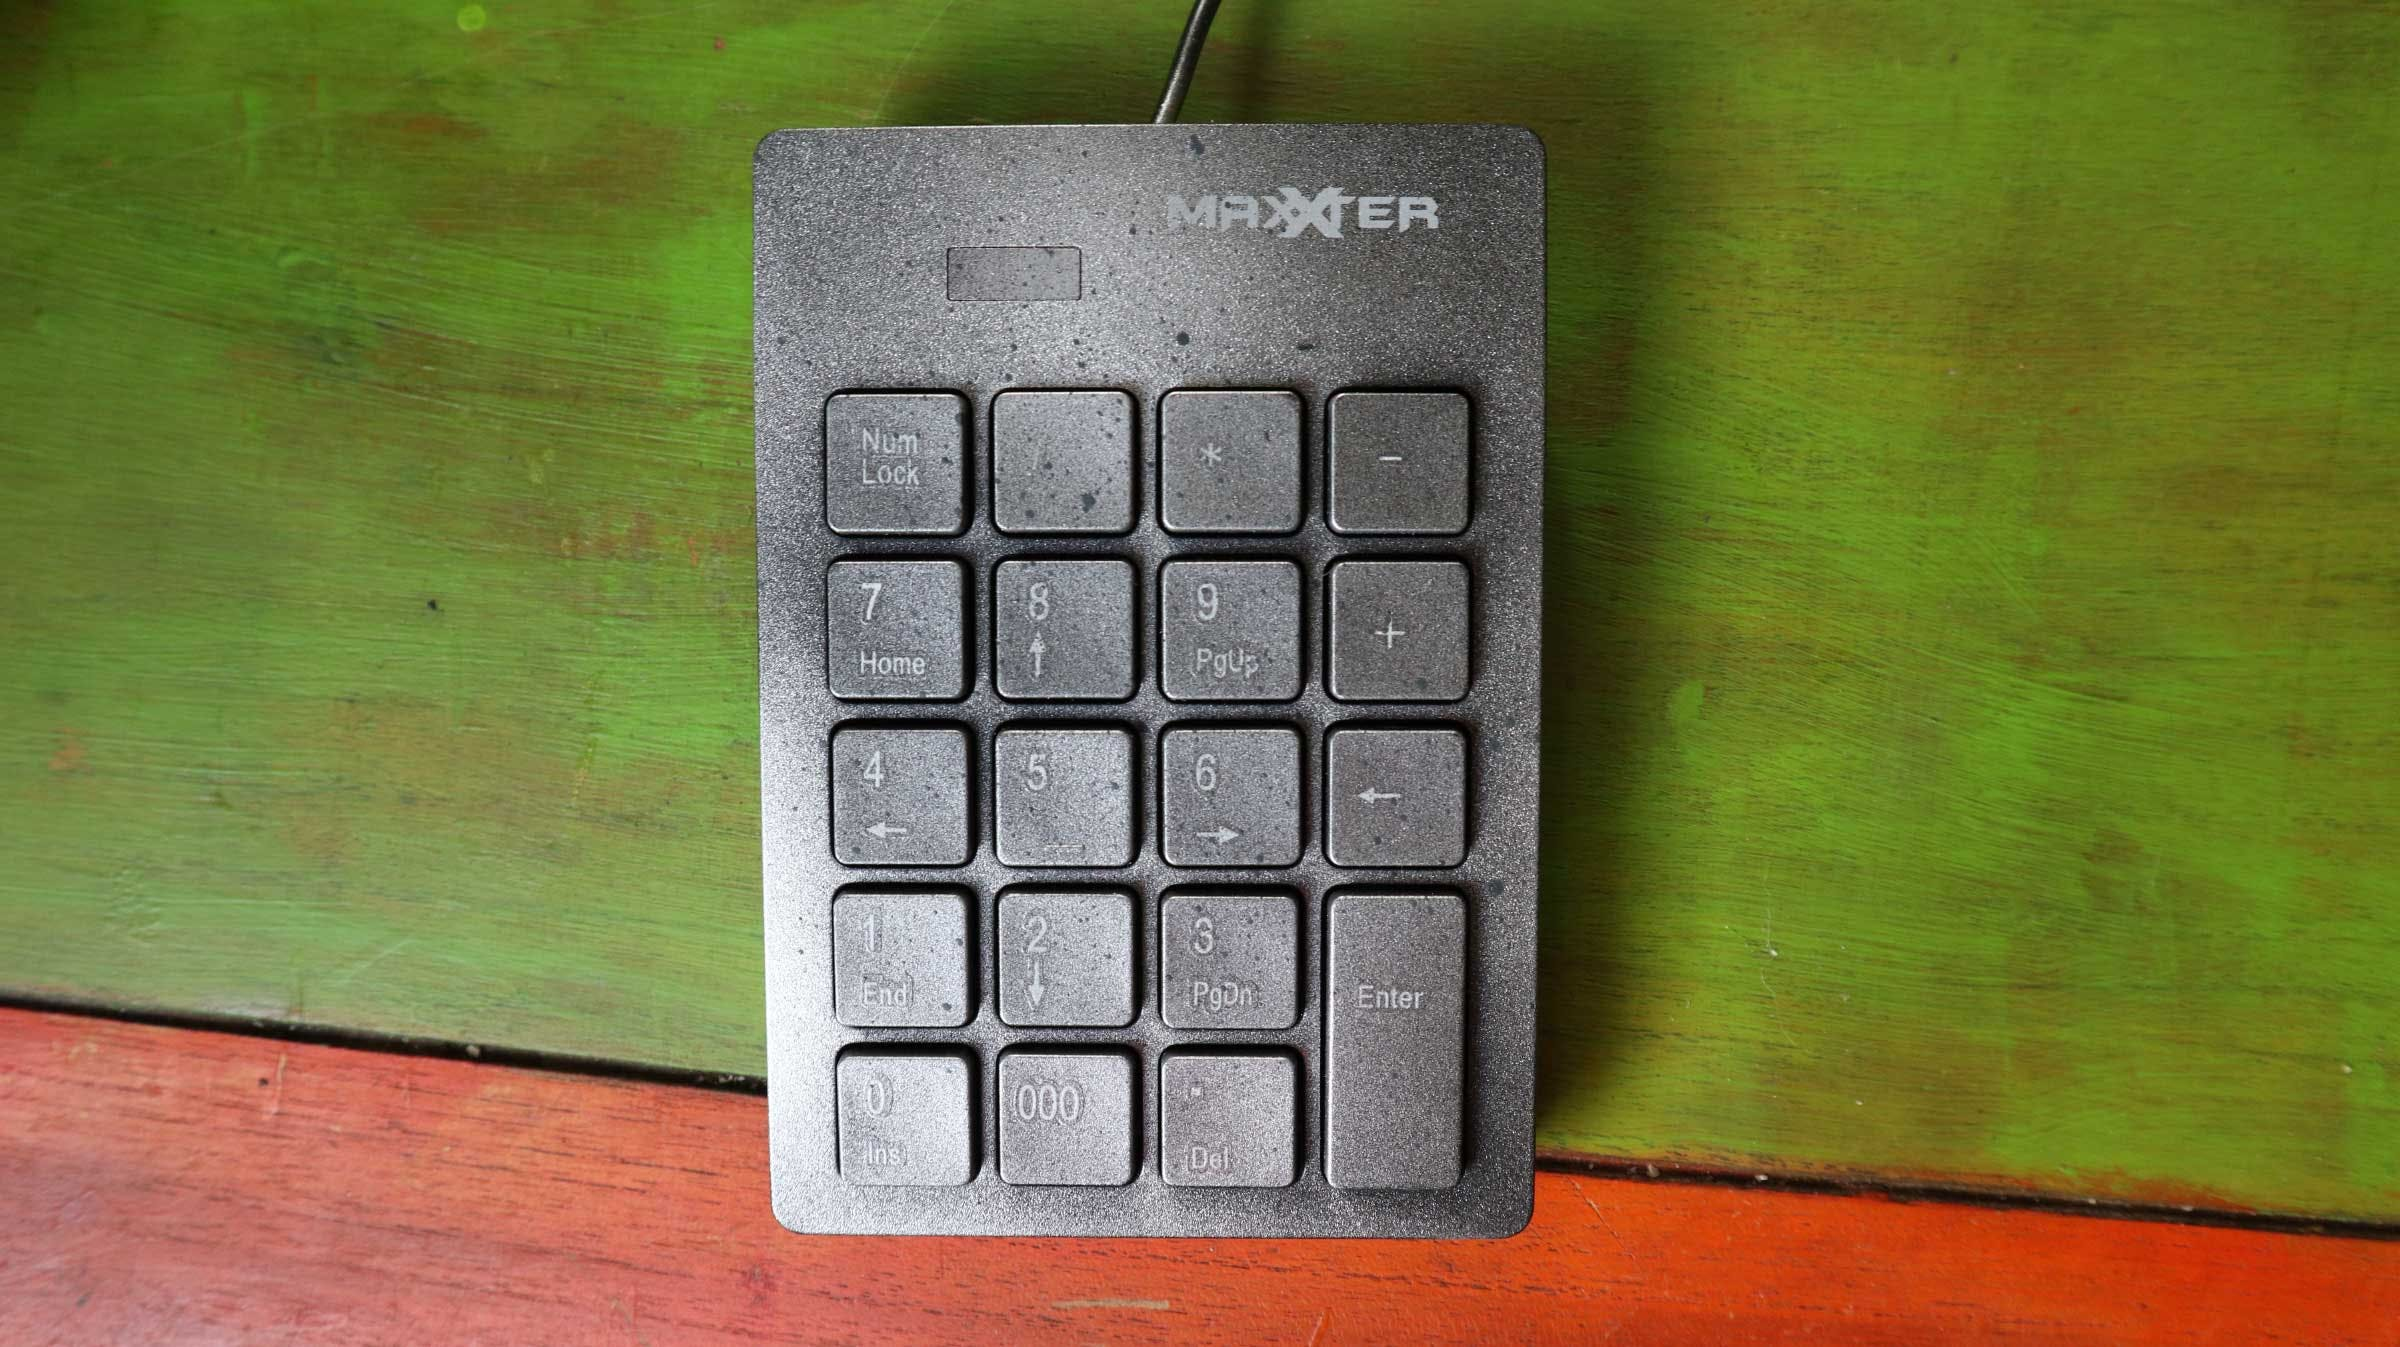 His controls, a simple keypad